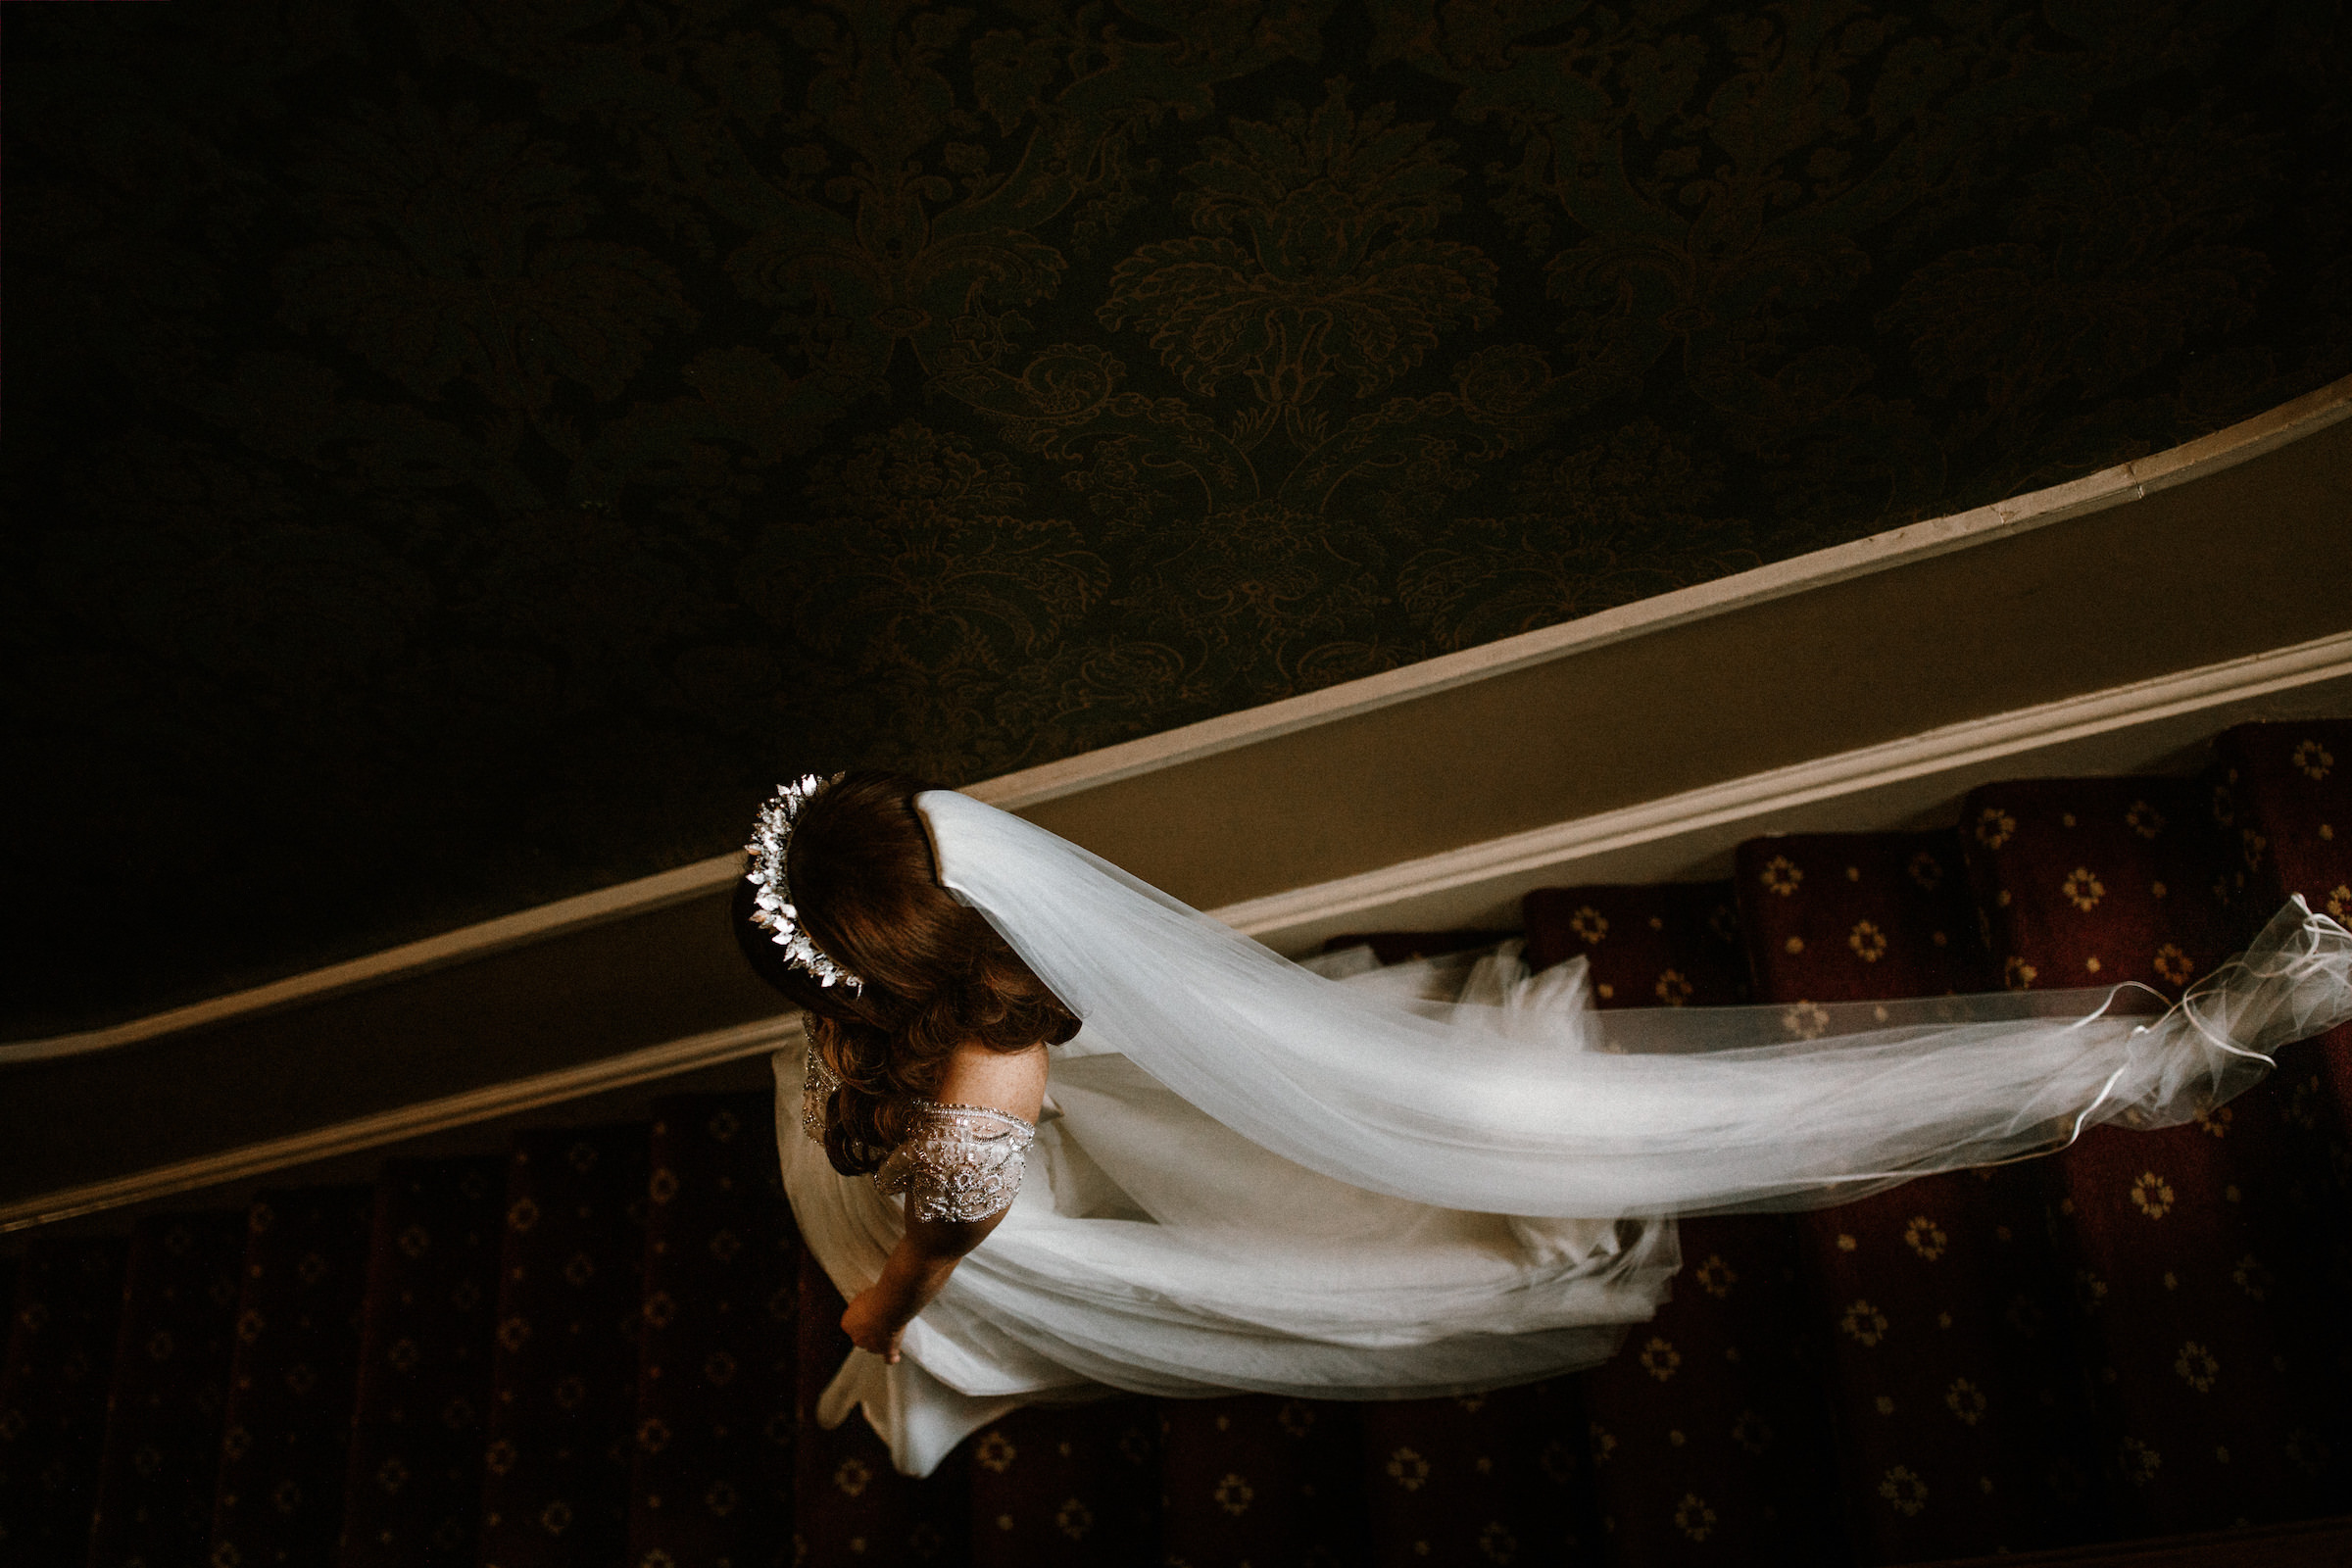 Bride descending stairs with tiara and long veil - photo by White Cat Studio